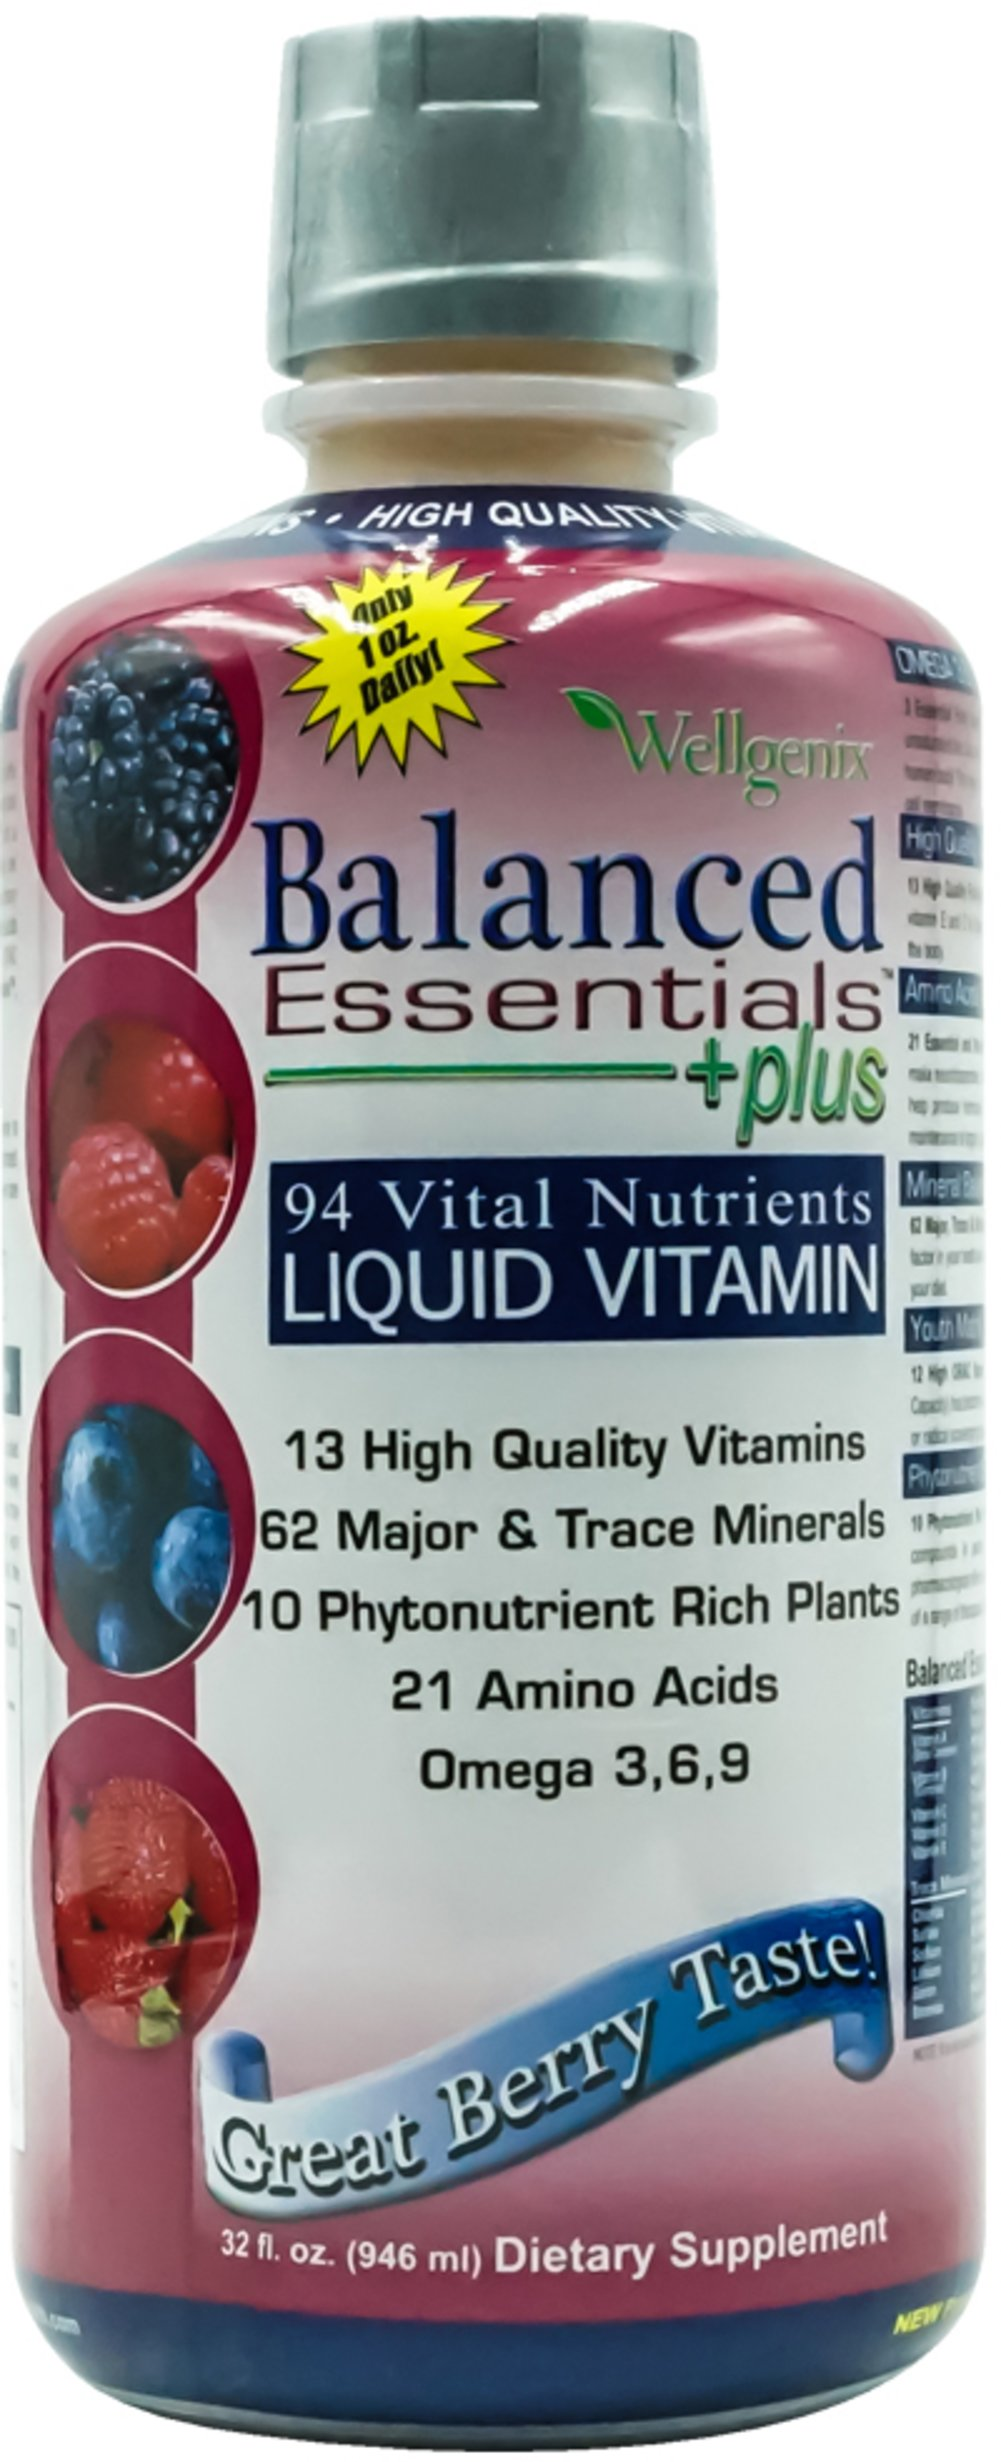 Balanced Essential™ Multivitamin <p><strong>From the Manufacturer:</strong></p><p>Balanced Essentials™ with 94 Vital Nutrients:</p><p>13 High Quality Vitamins</p><p>62 Major & Trace Minerals</p><p>10 Phytonutrient Rich Plants</p><p>18 Amino Acids</p><p>Omega 3,6,9</p><p>Manufactured by Wellgenix</p> 32 oz Liquid  $29.99